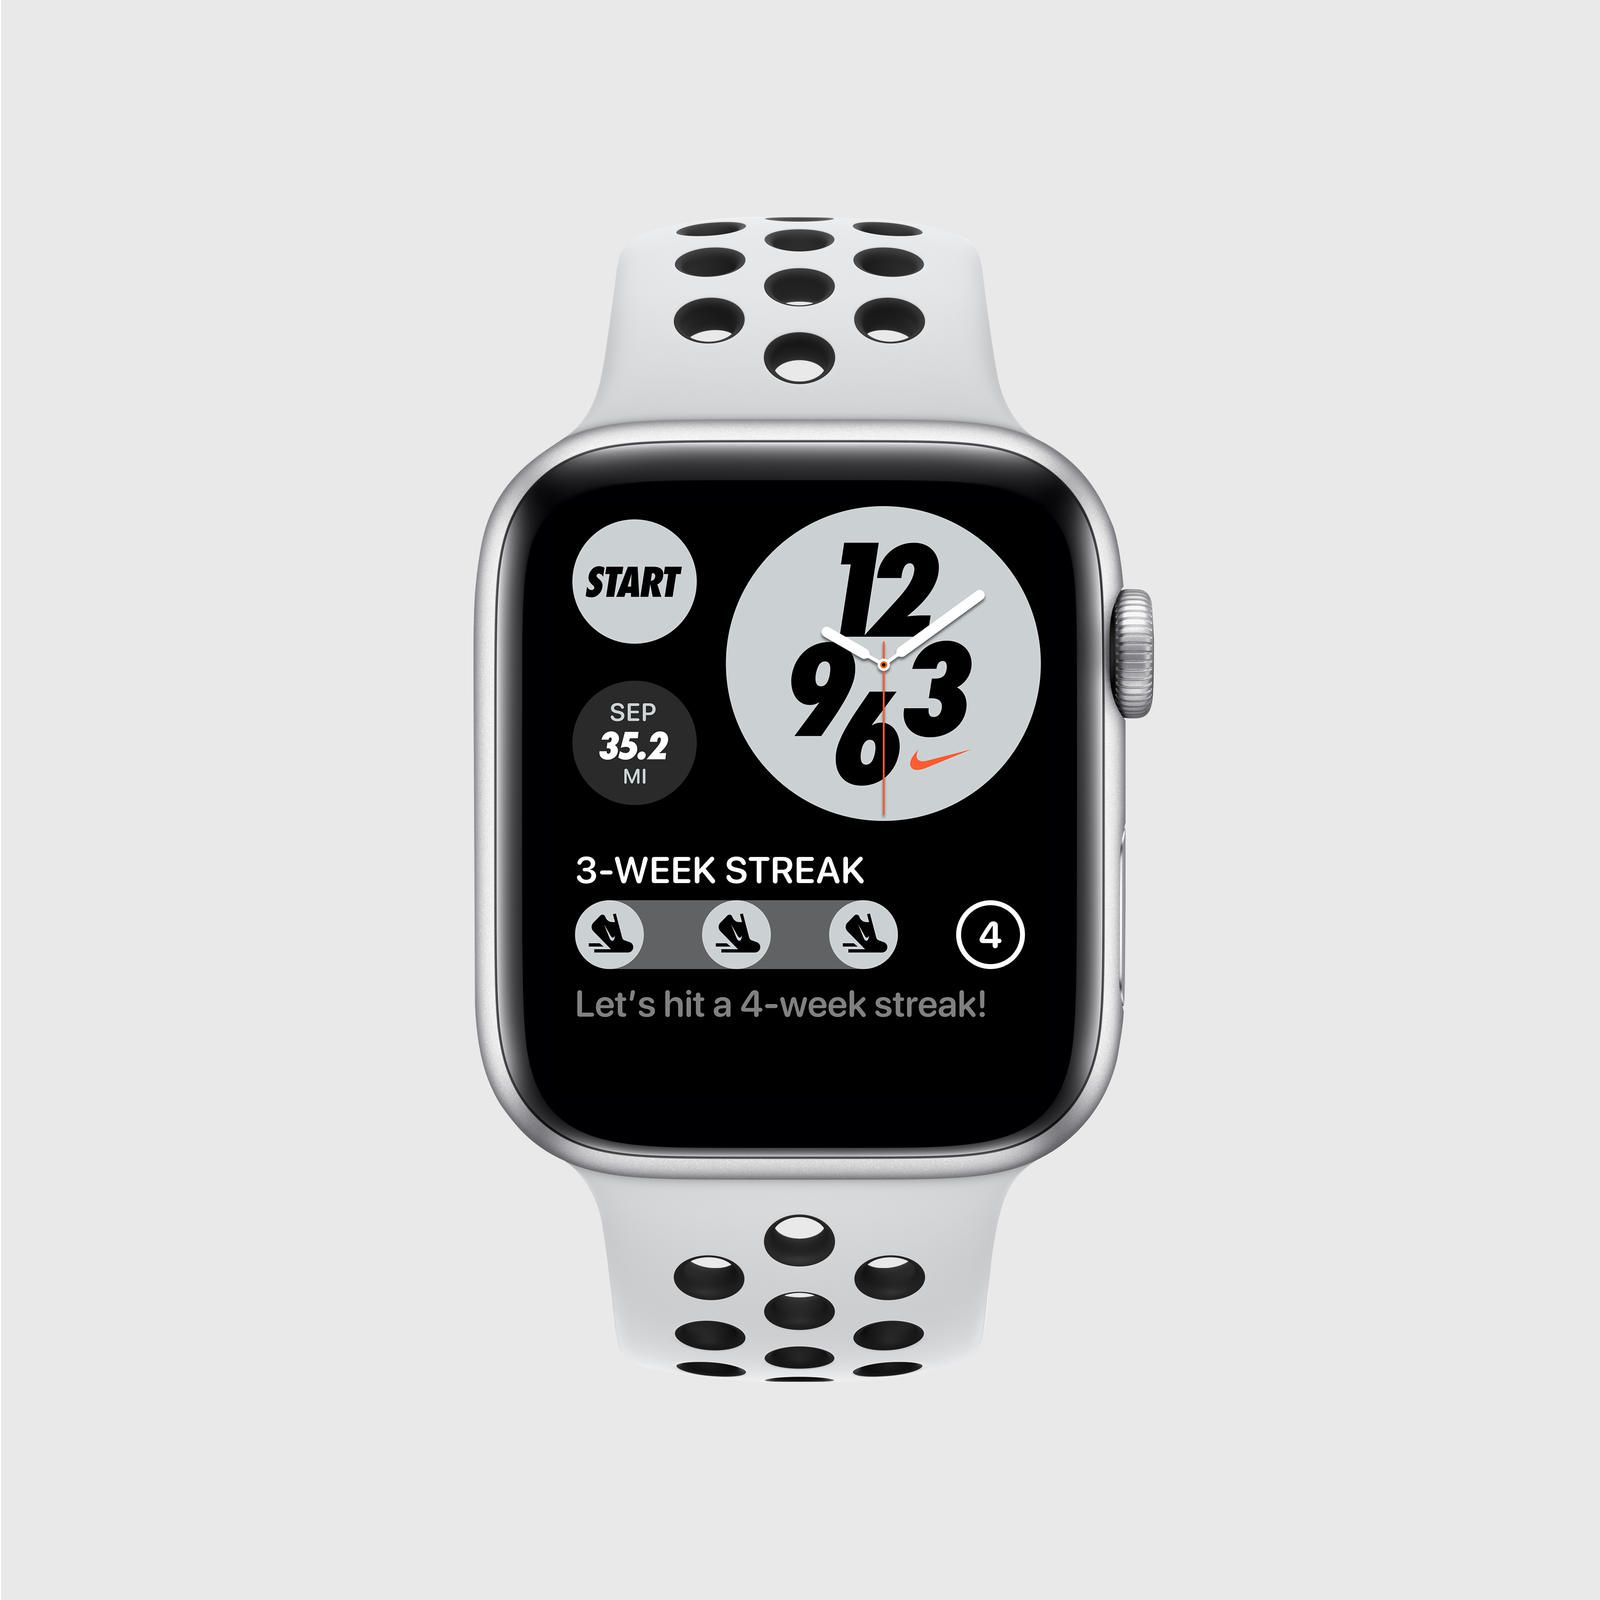 transferencia de dinero Avanzar estilo  Nike Run Club Update Brings a New Modular Watch Face, 'Twilight Mode,' and  'Streaks' - MacRumors